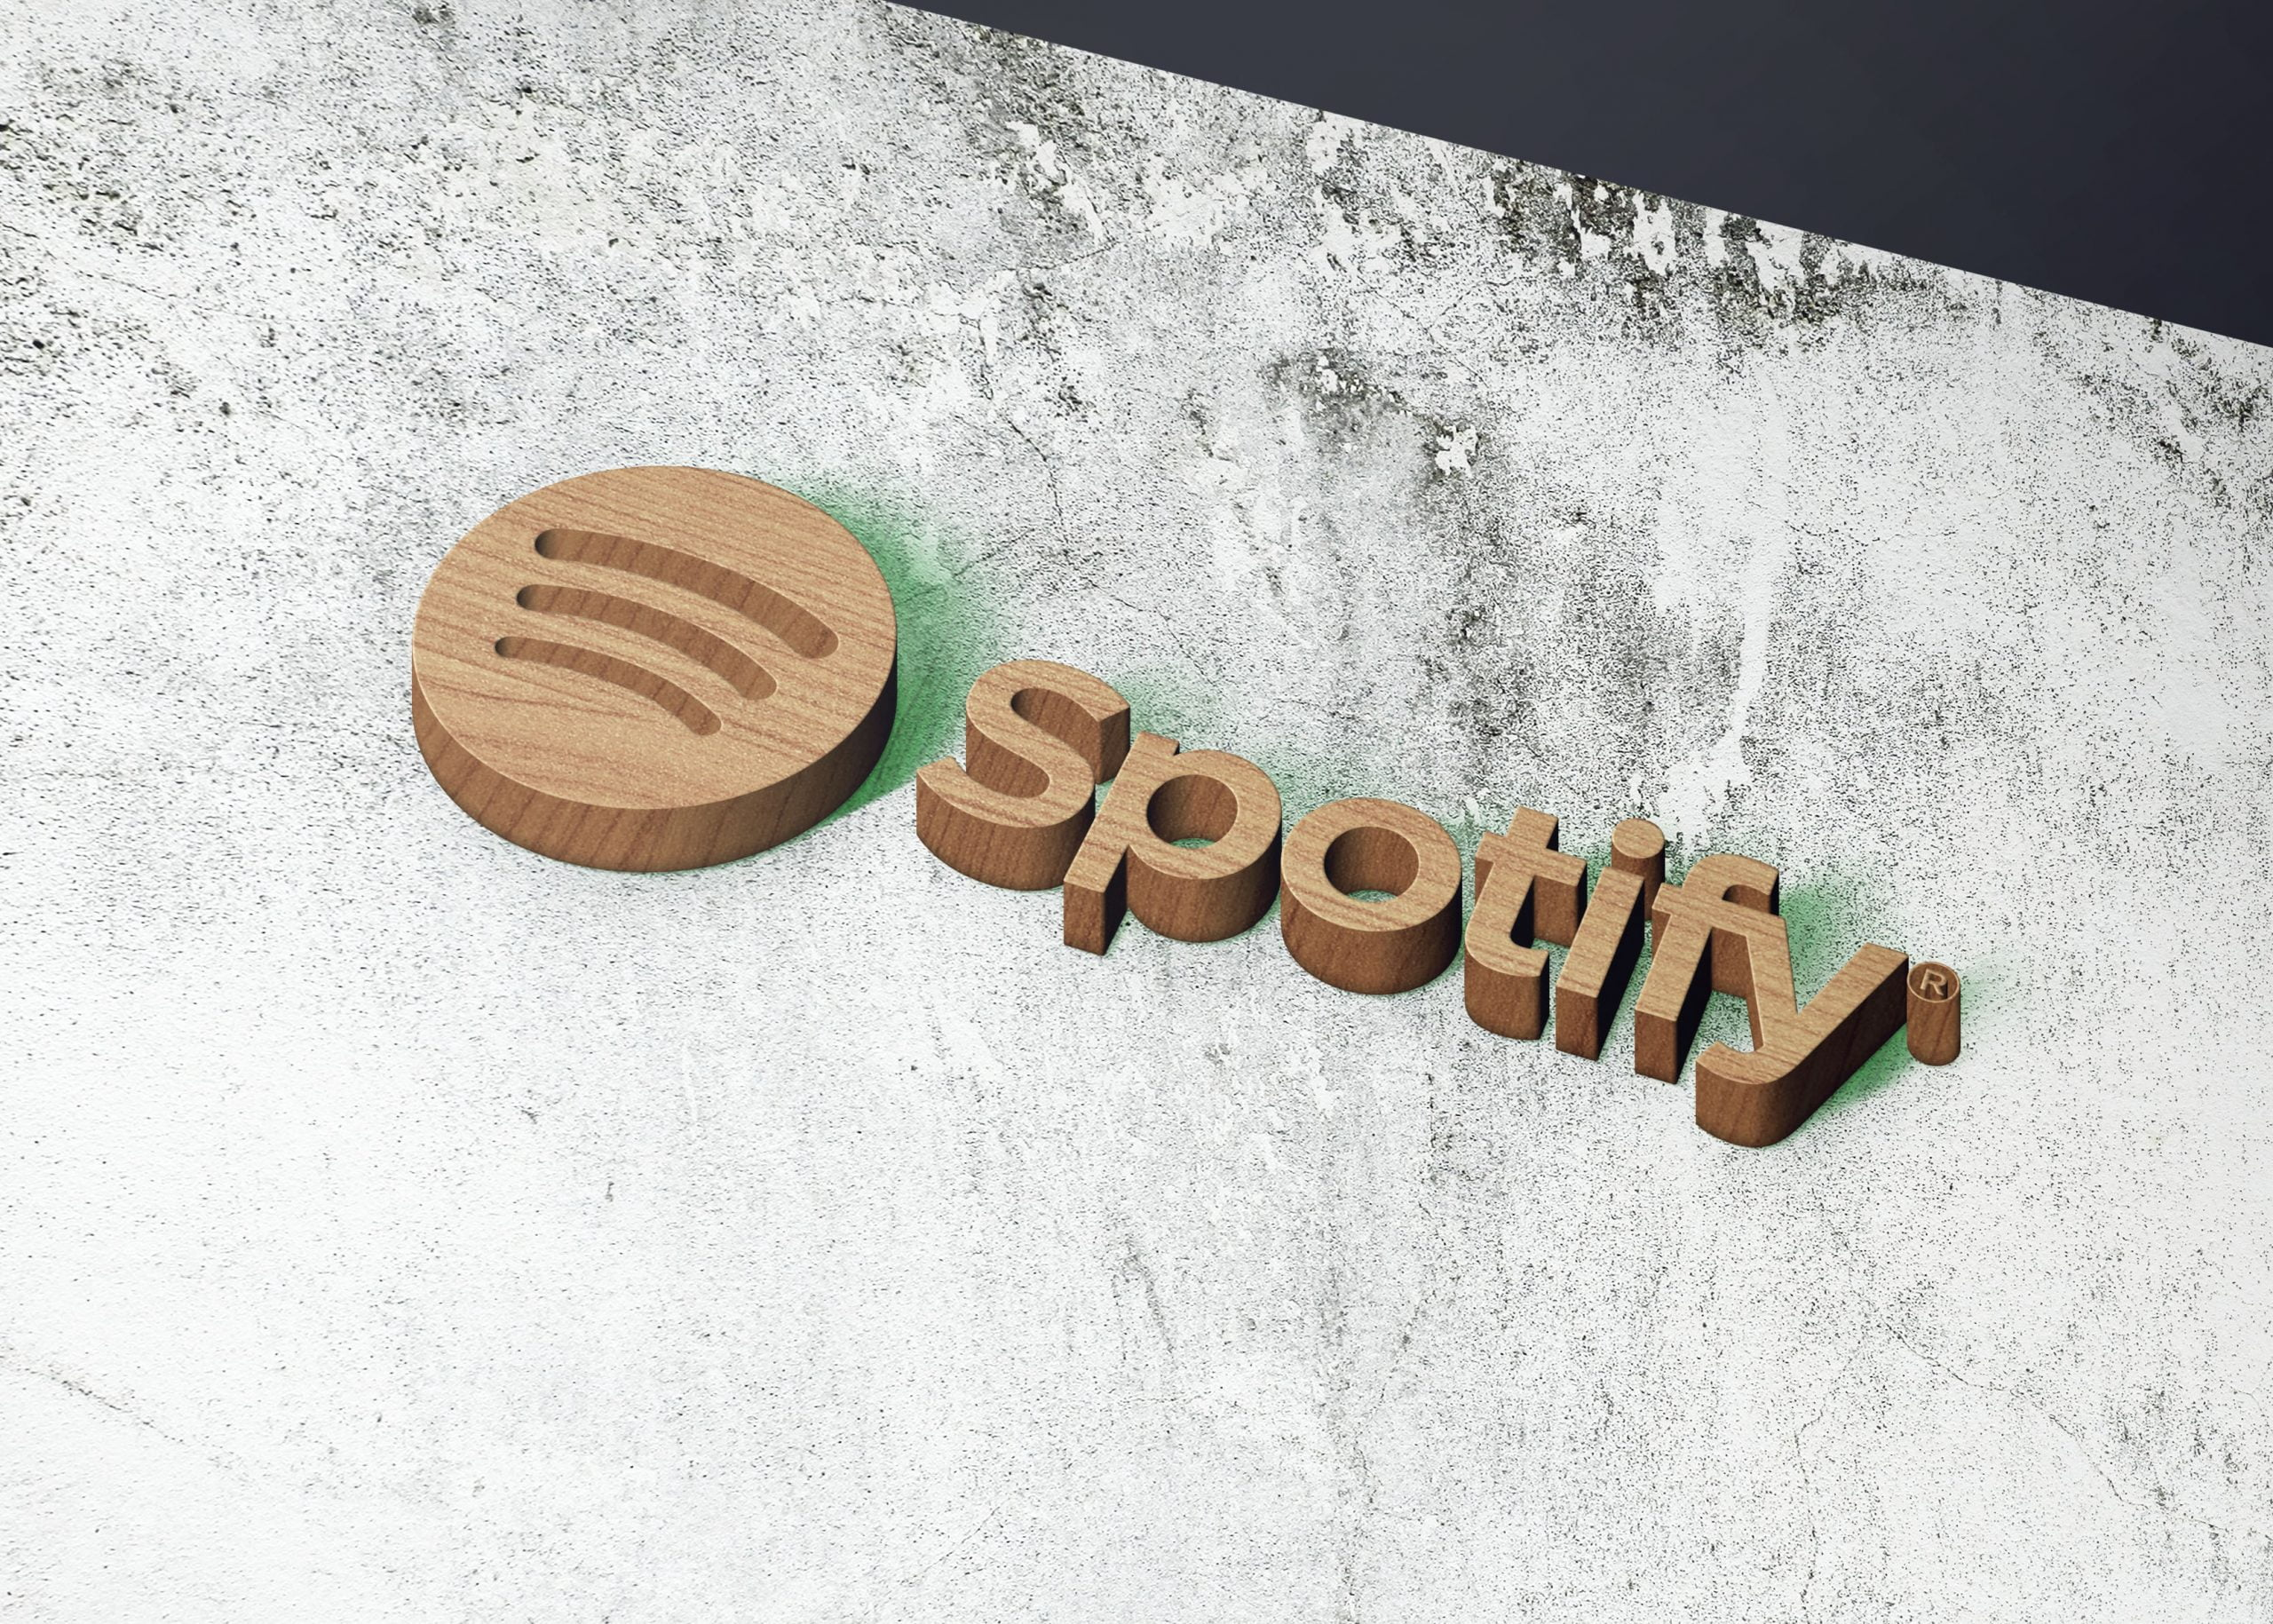 Spotify on realistice 3d wall